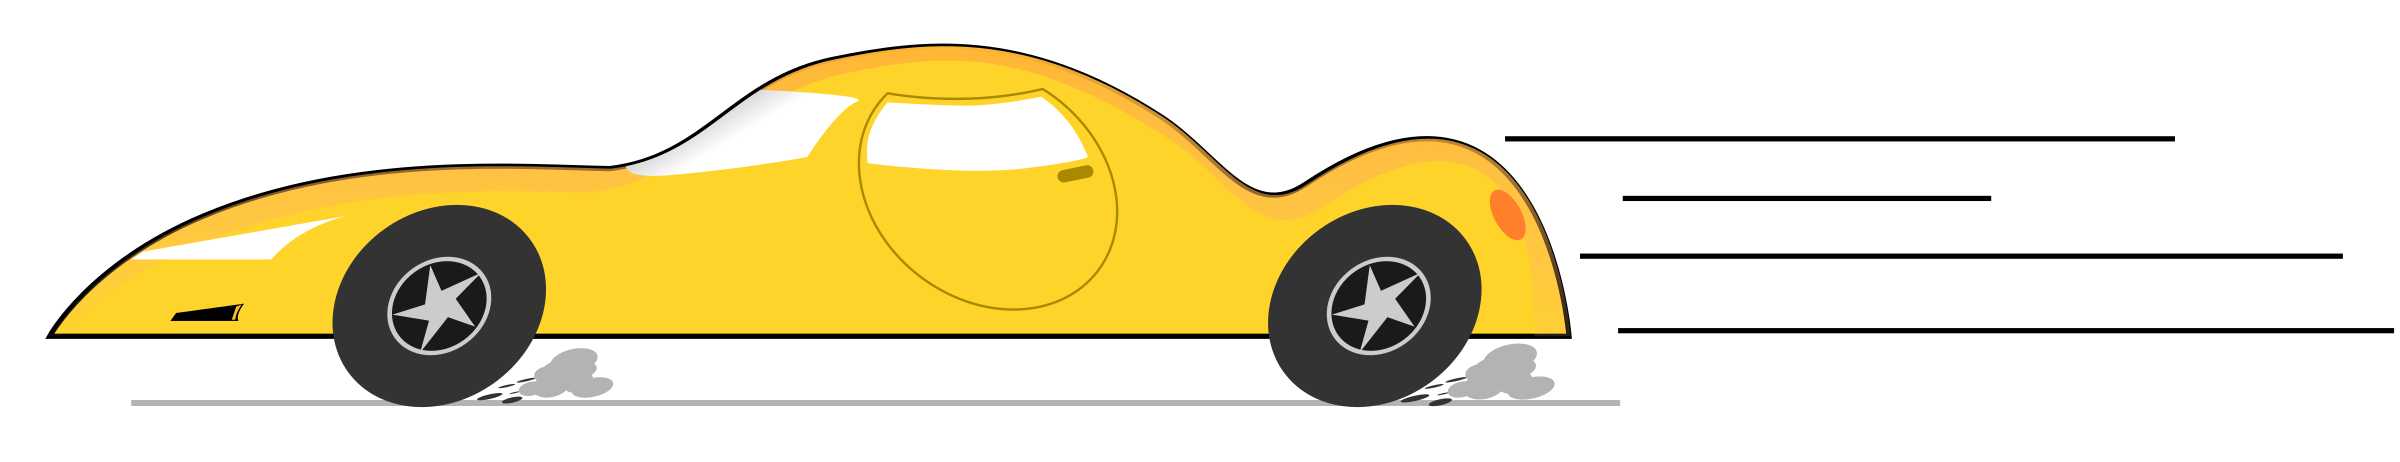 Car side view clipart image royalty free stock Clipart - Cartoon Car side view yellow image royalty free stock